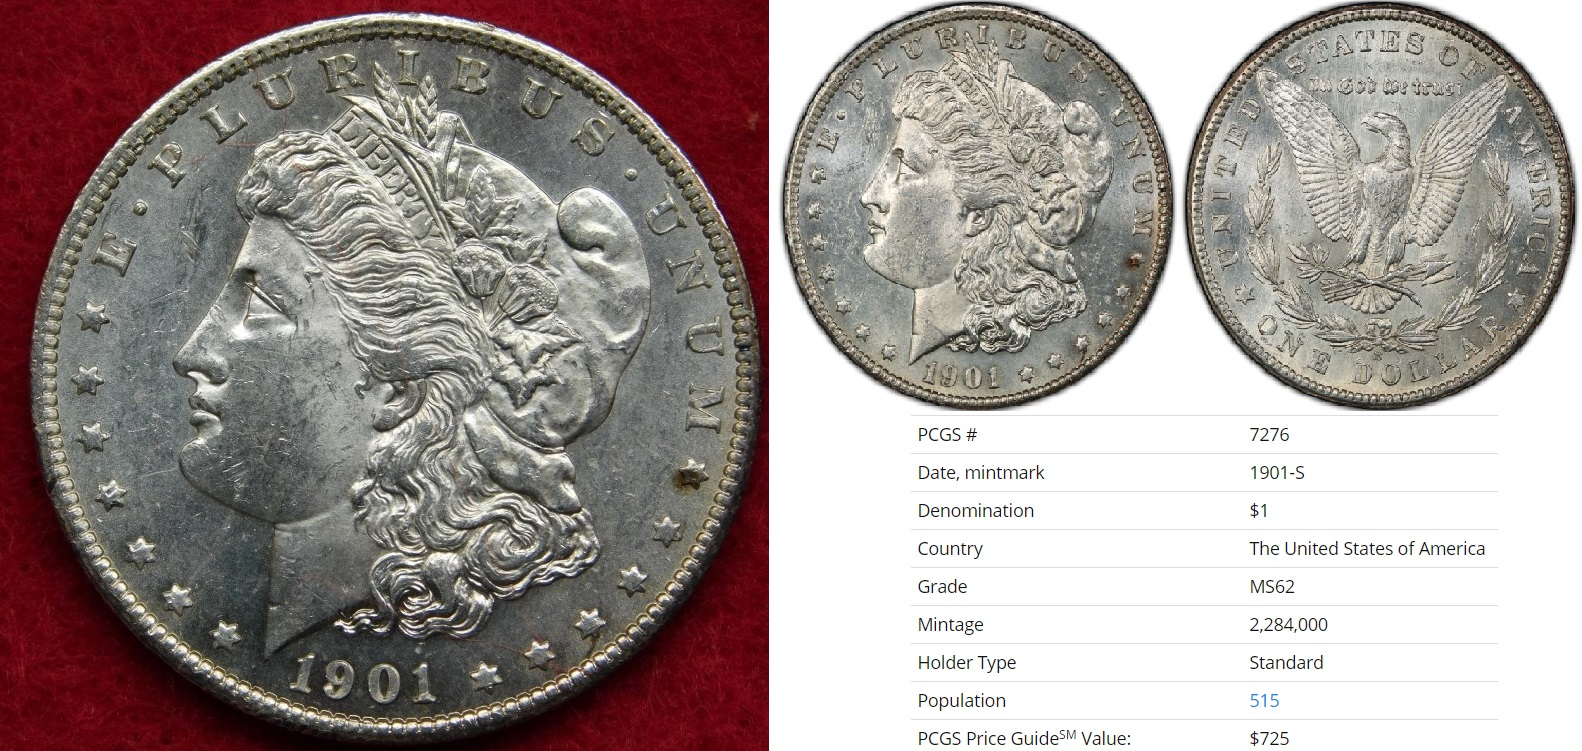 This 1901-S Morgan dollar was won with a $410 bid.